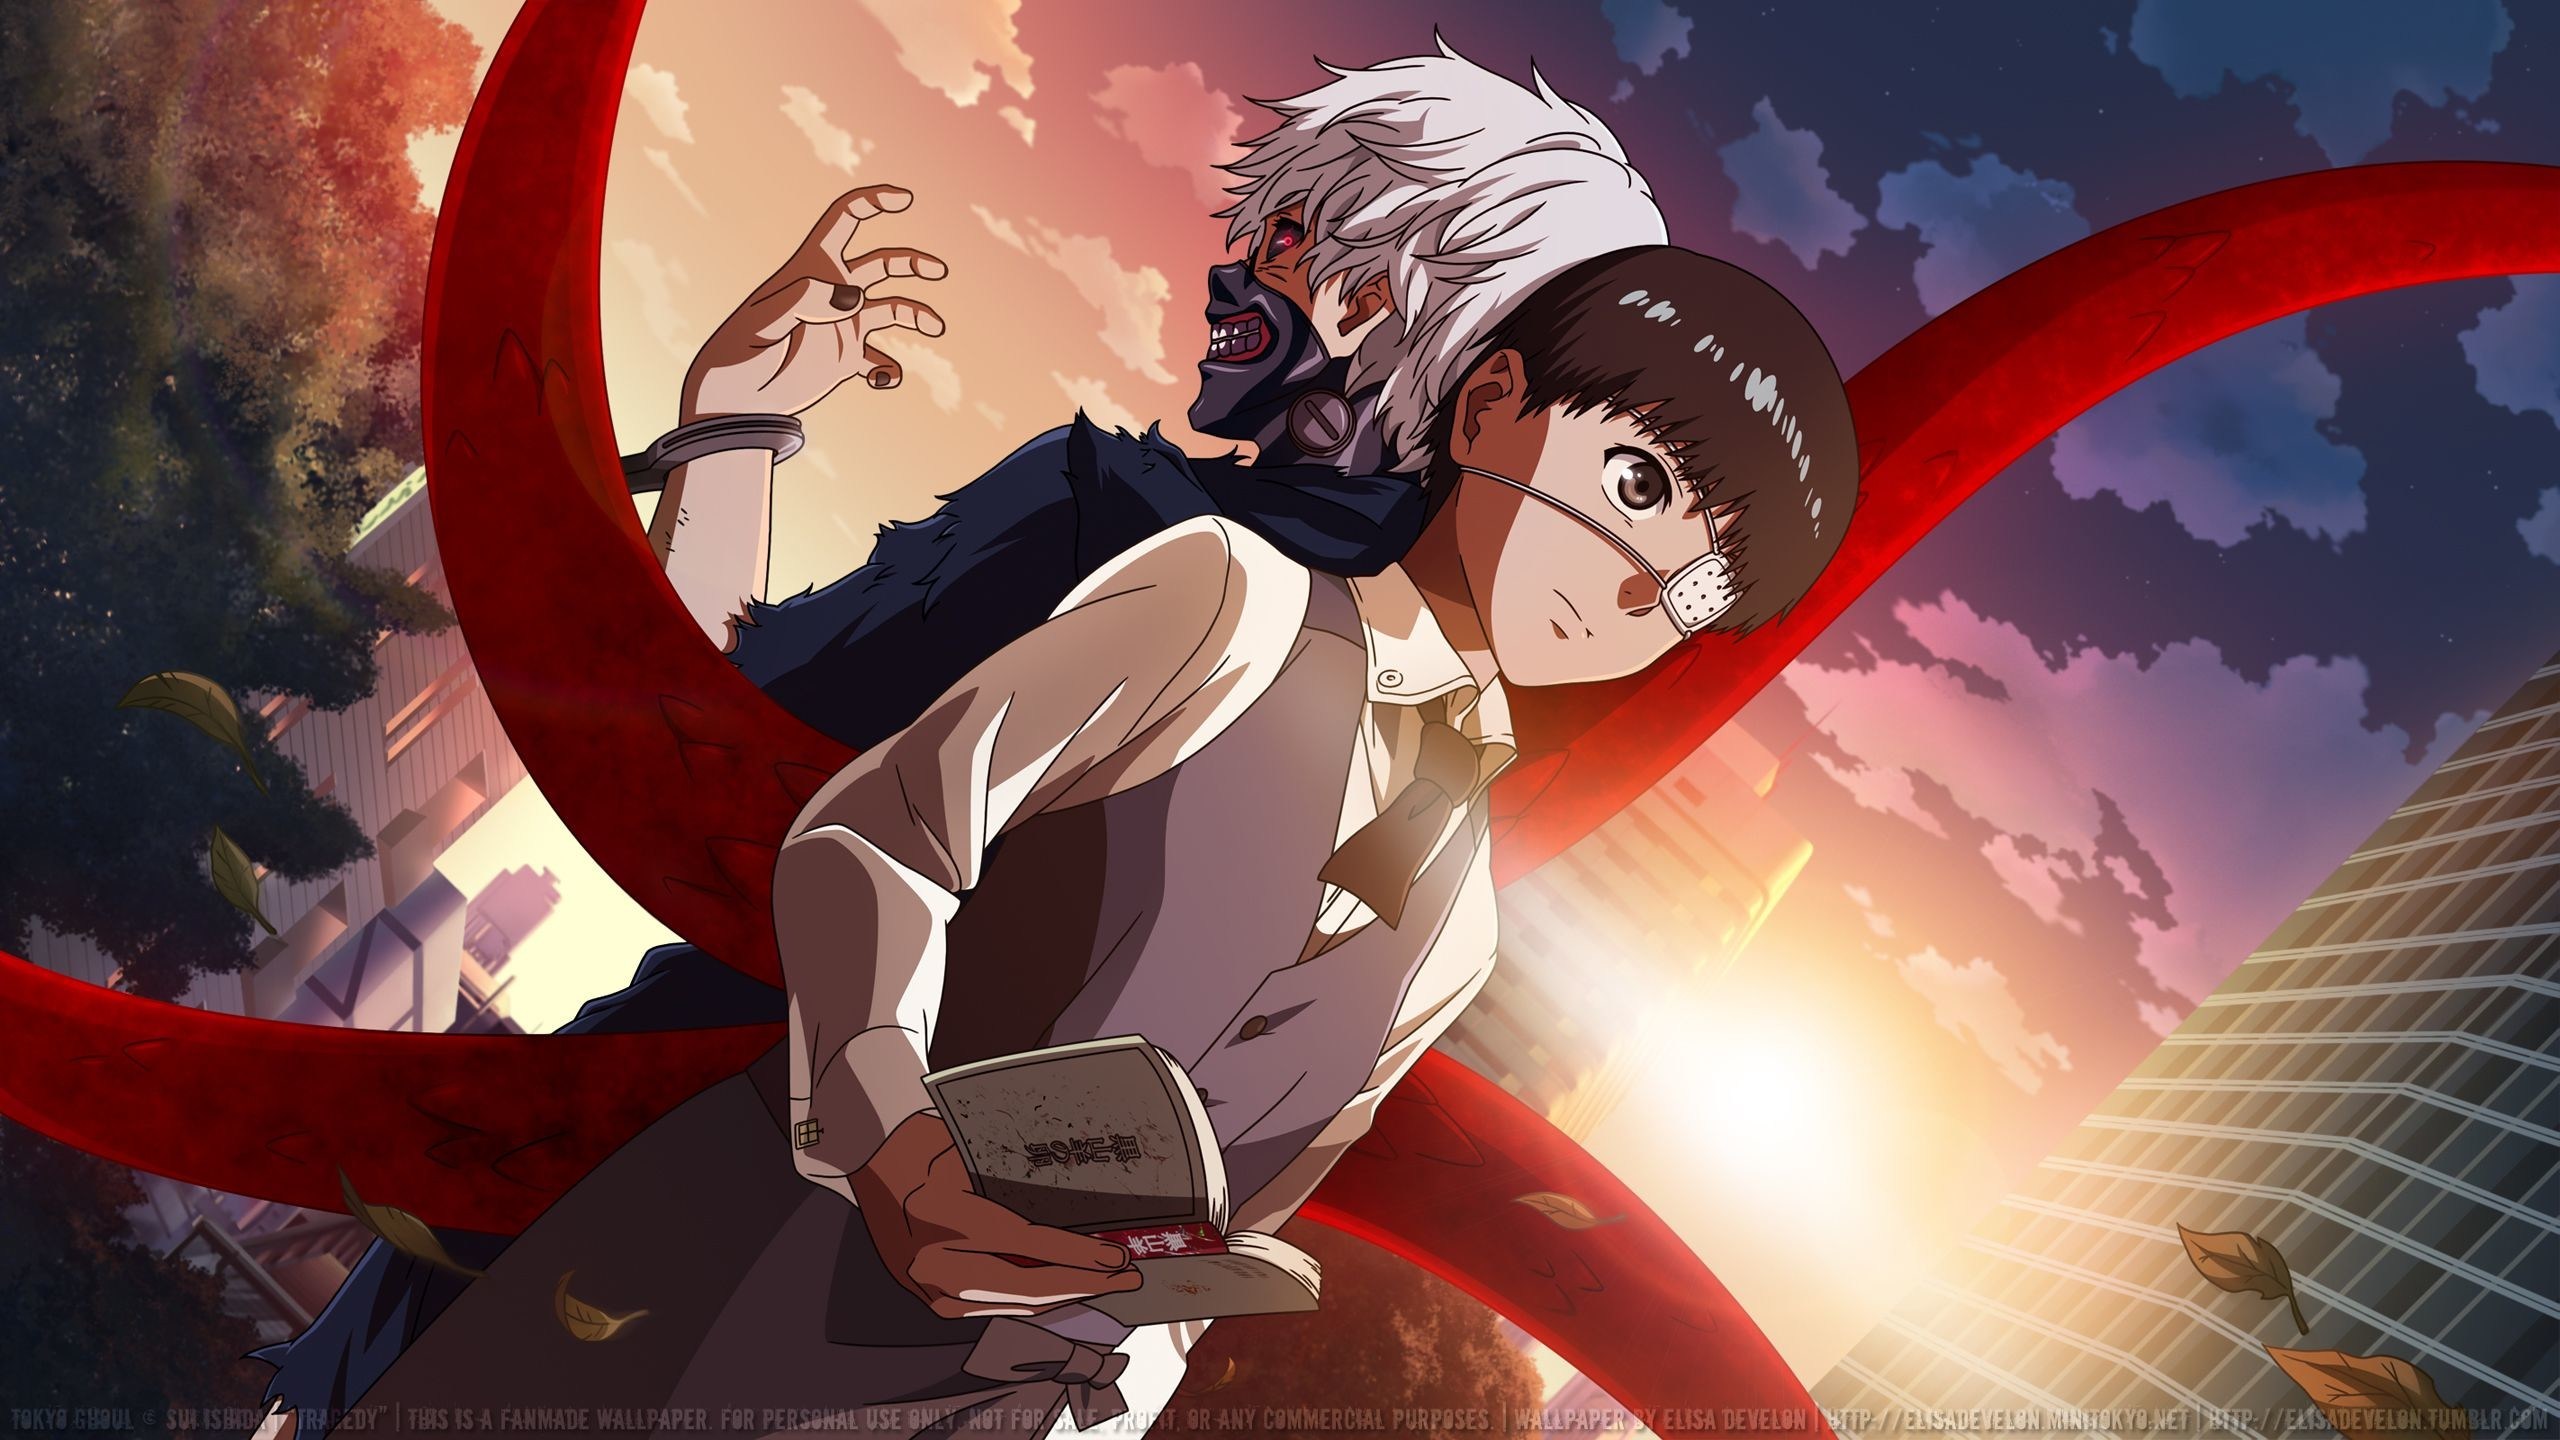 Tokyo Ghoul 1080p Wallpaper Posted By Sarah Sellers